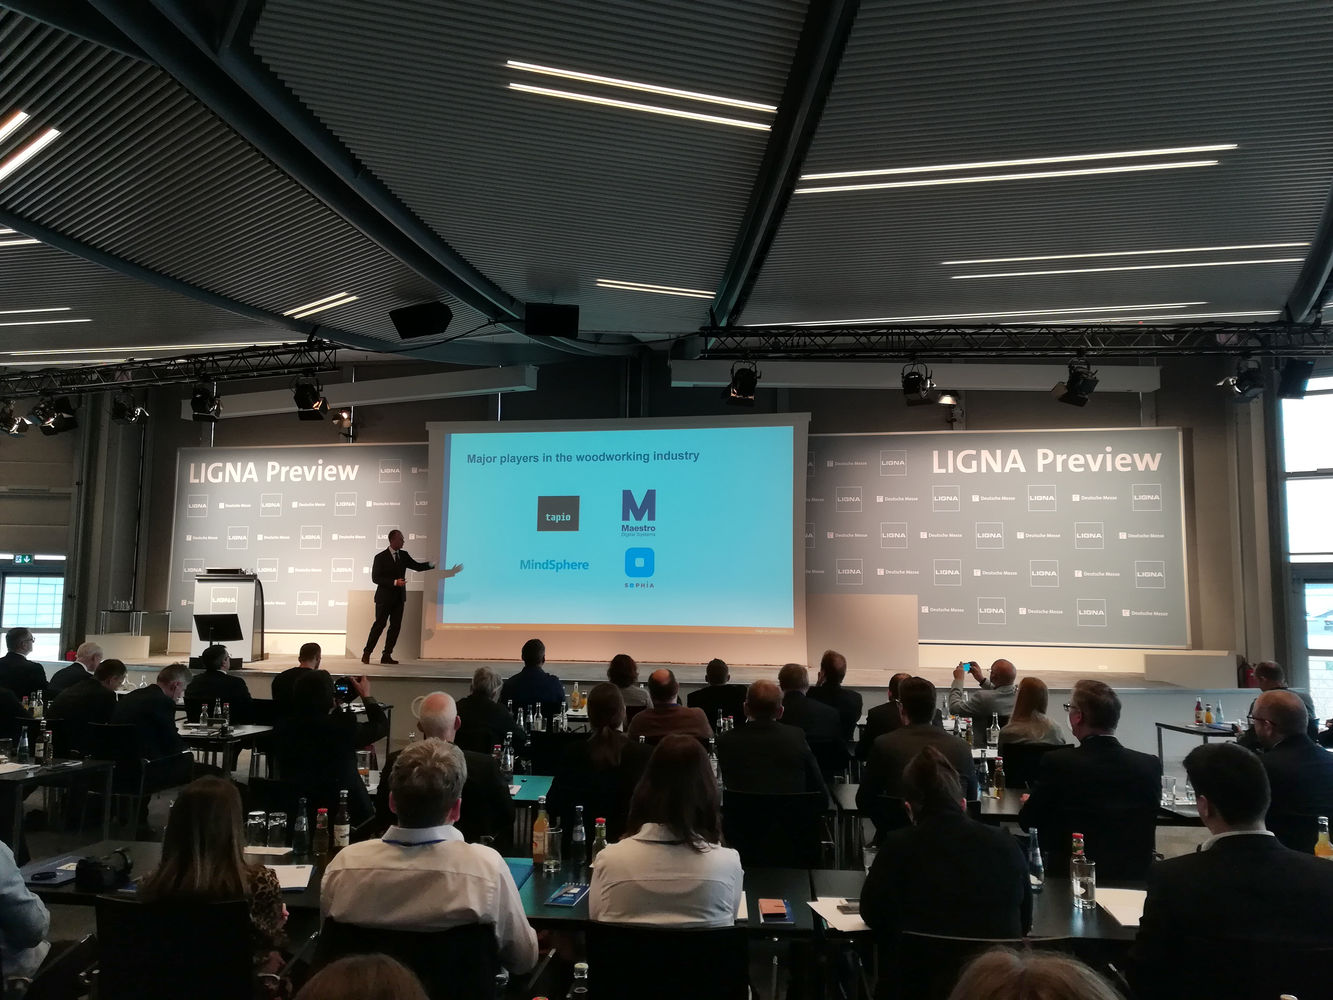 SCM, partner of Ligna Preview in Hanover